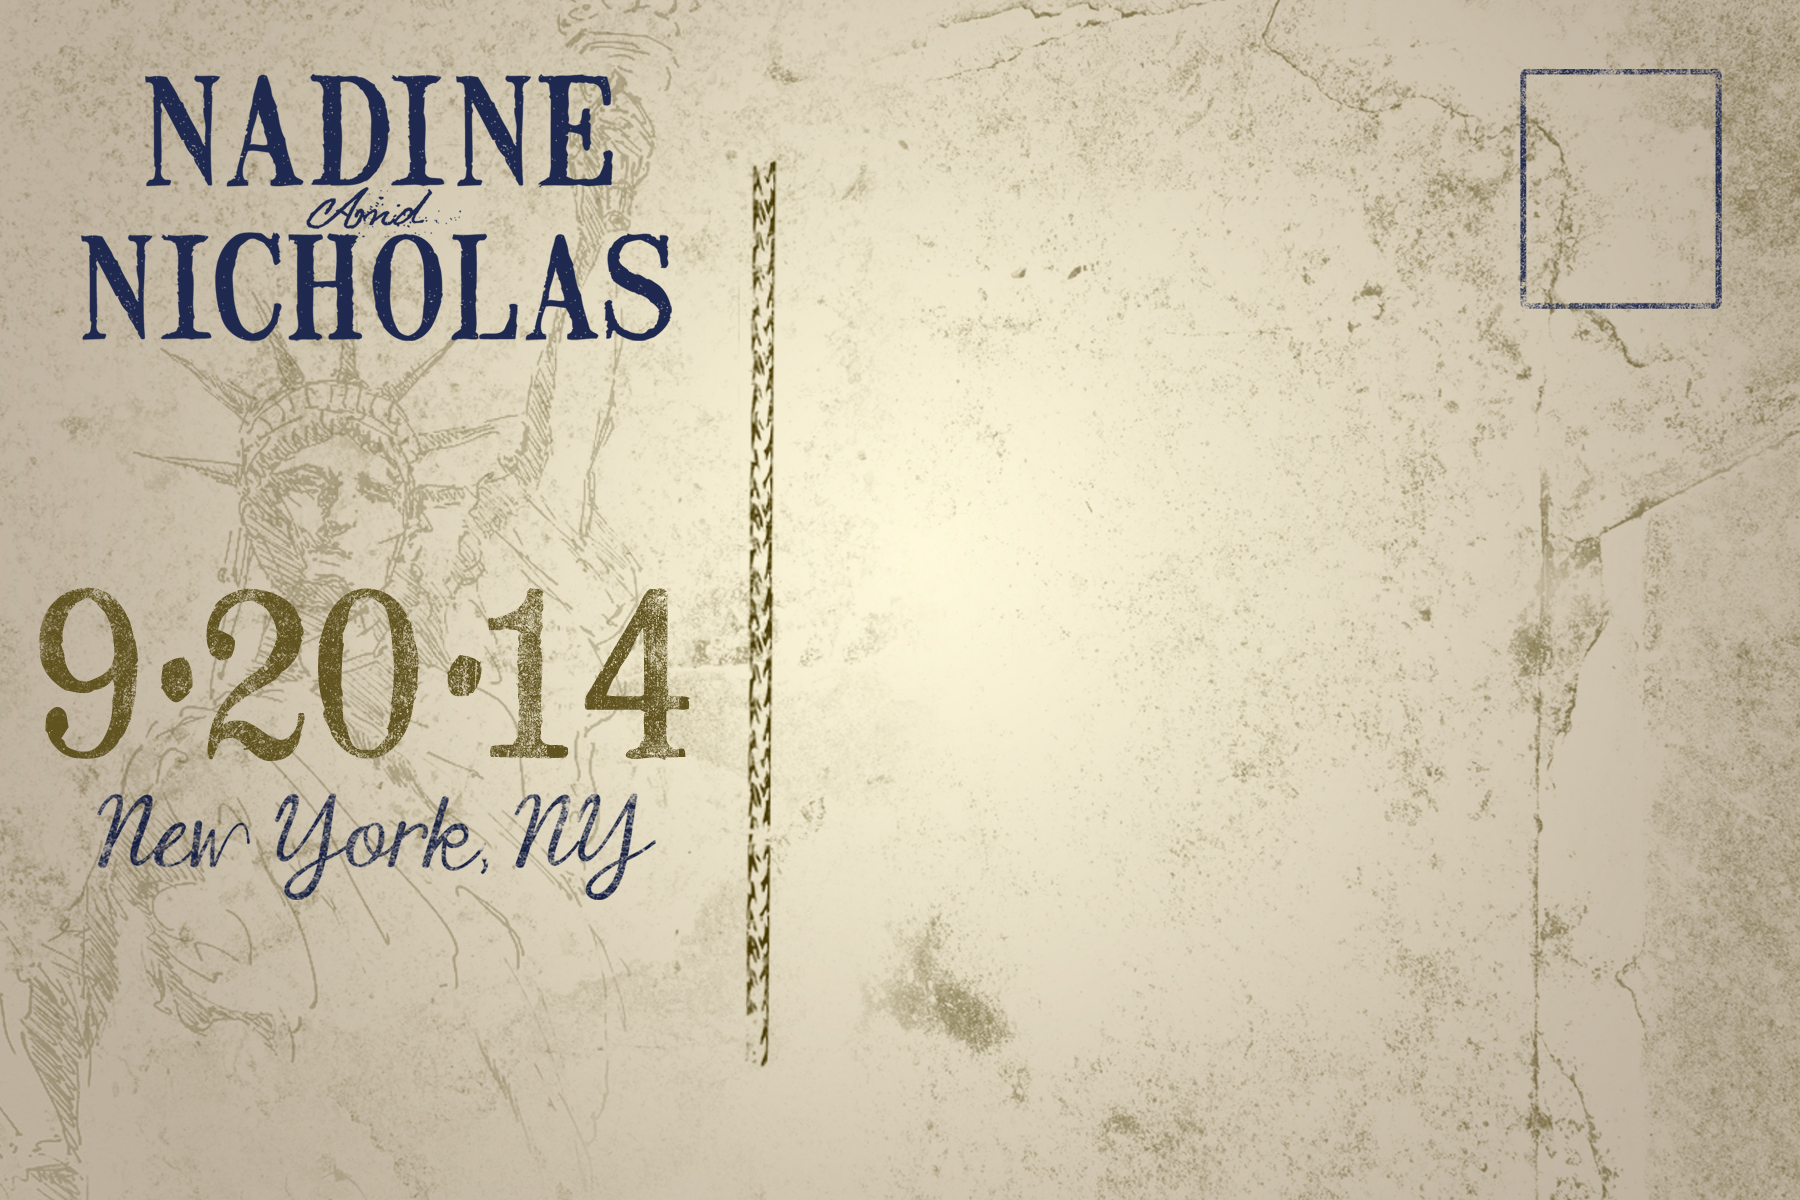 NADINE AND NICHOLAS SAVETHEDATE BACK.jpg